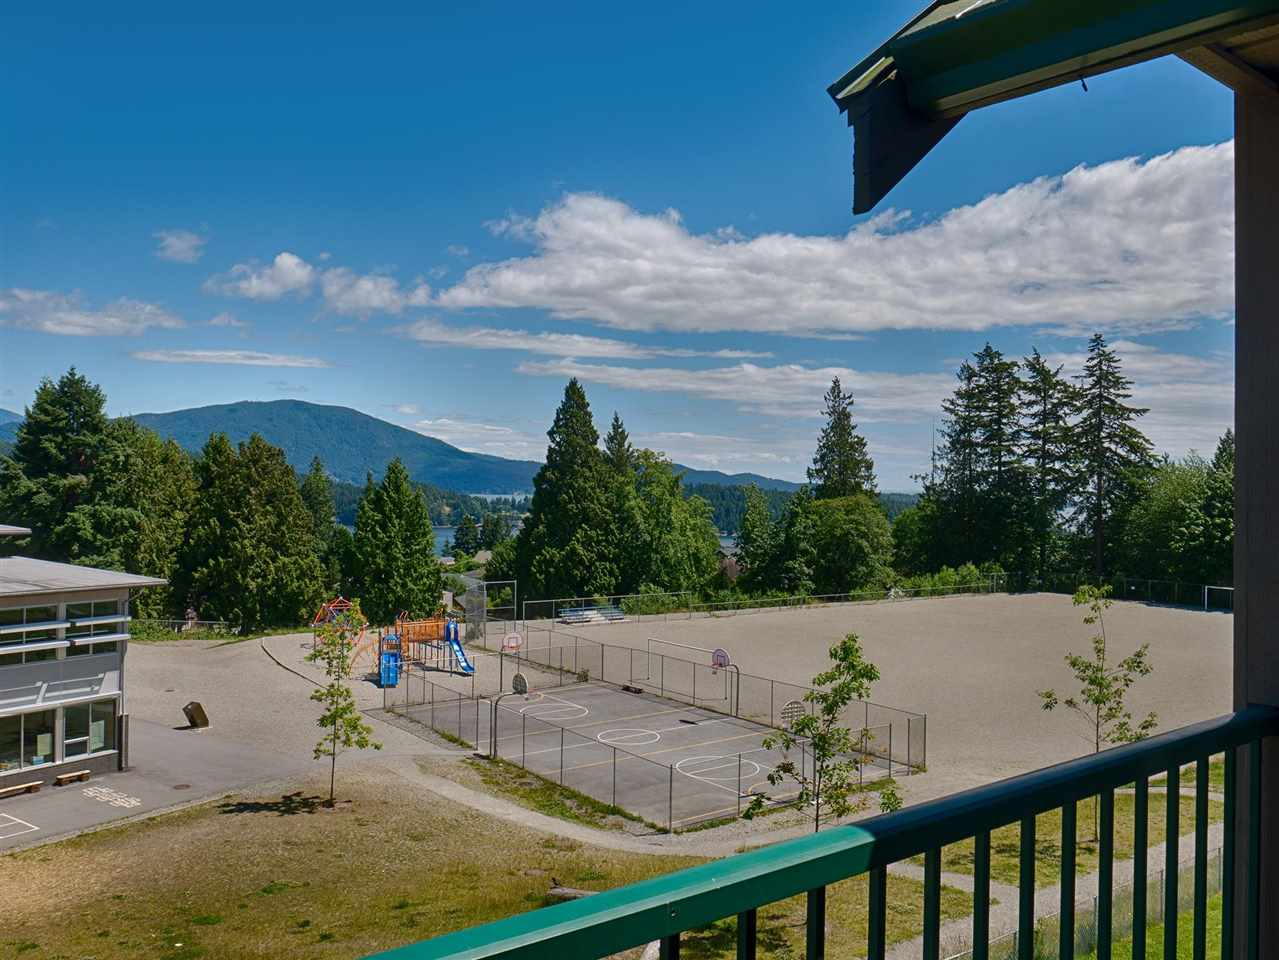 Photo 16: 16 622 FARNHAM Road in Gibsons: Gibsons & Area Condo for sale (Sunshine Coast)  : MLS® # R2160883